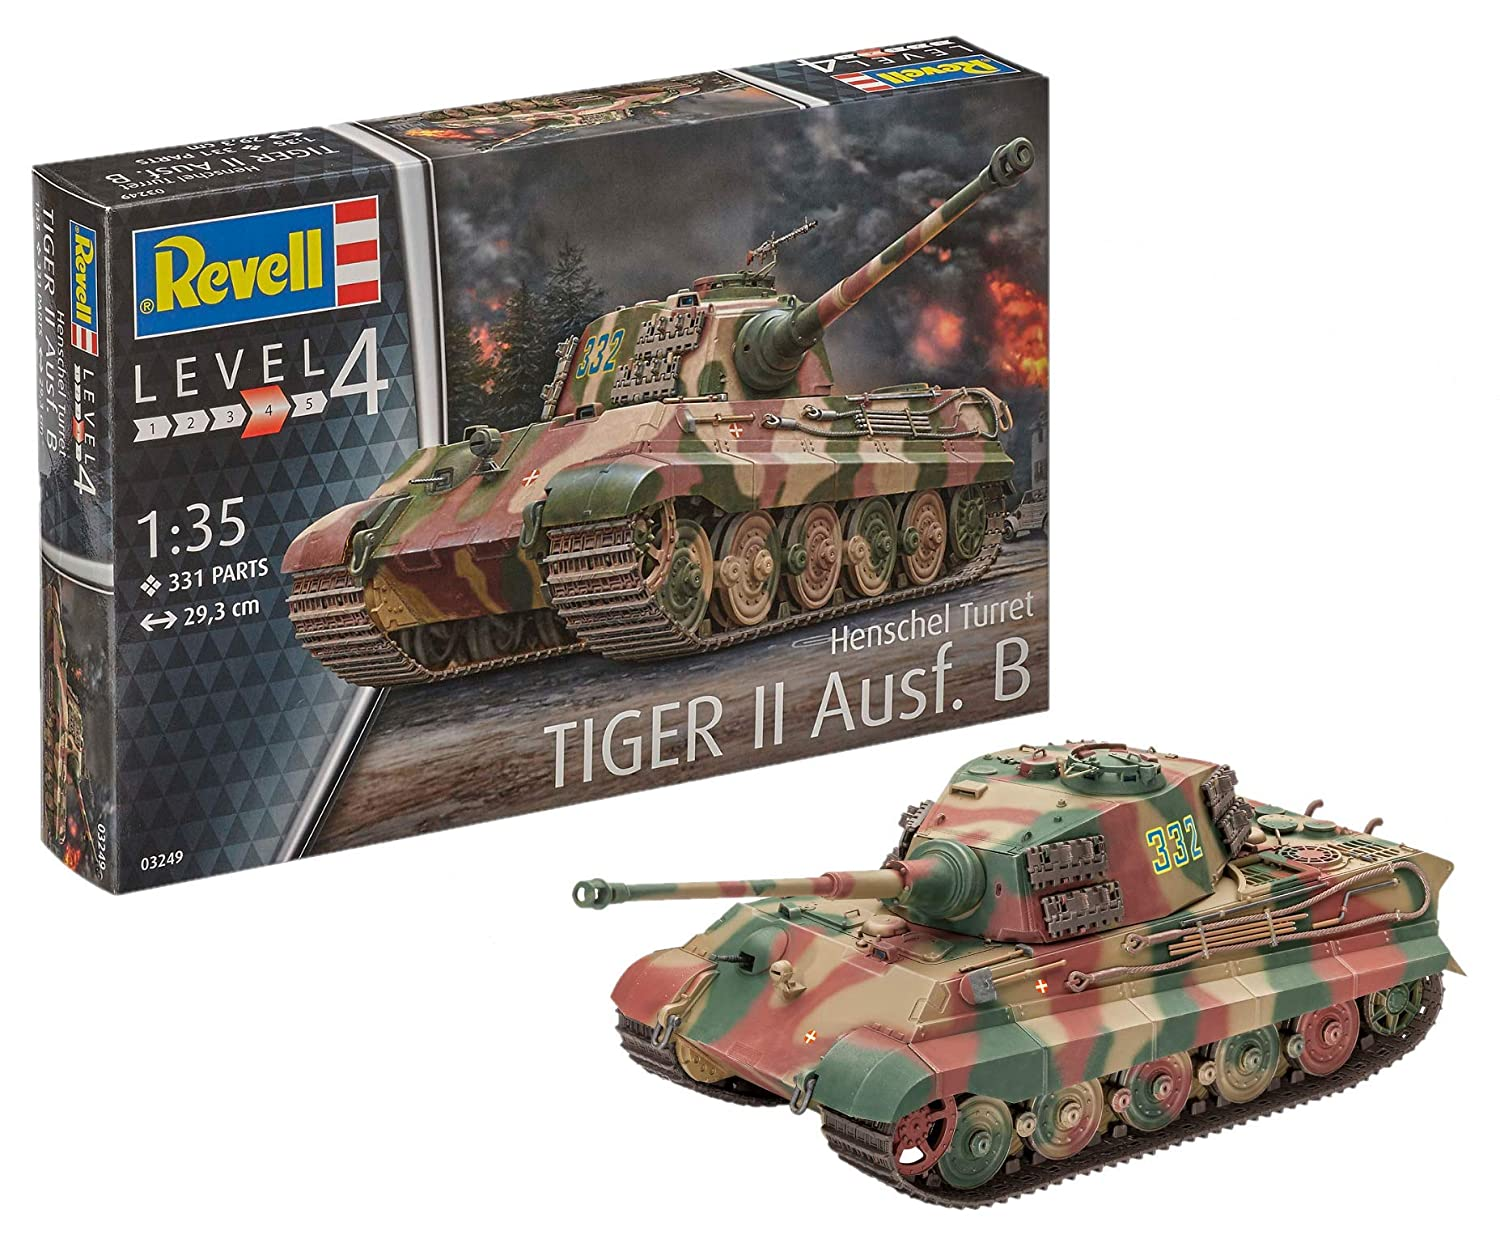 Revell- Maqueta II Ausf. B, King Tiger, con Henschel Tower, Kit Modelo, Escala 1:35 (03249)